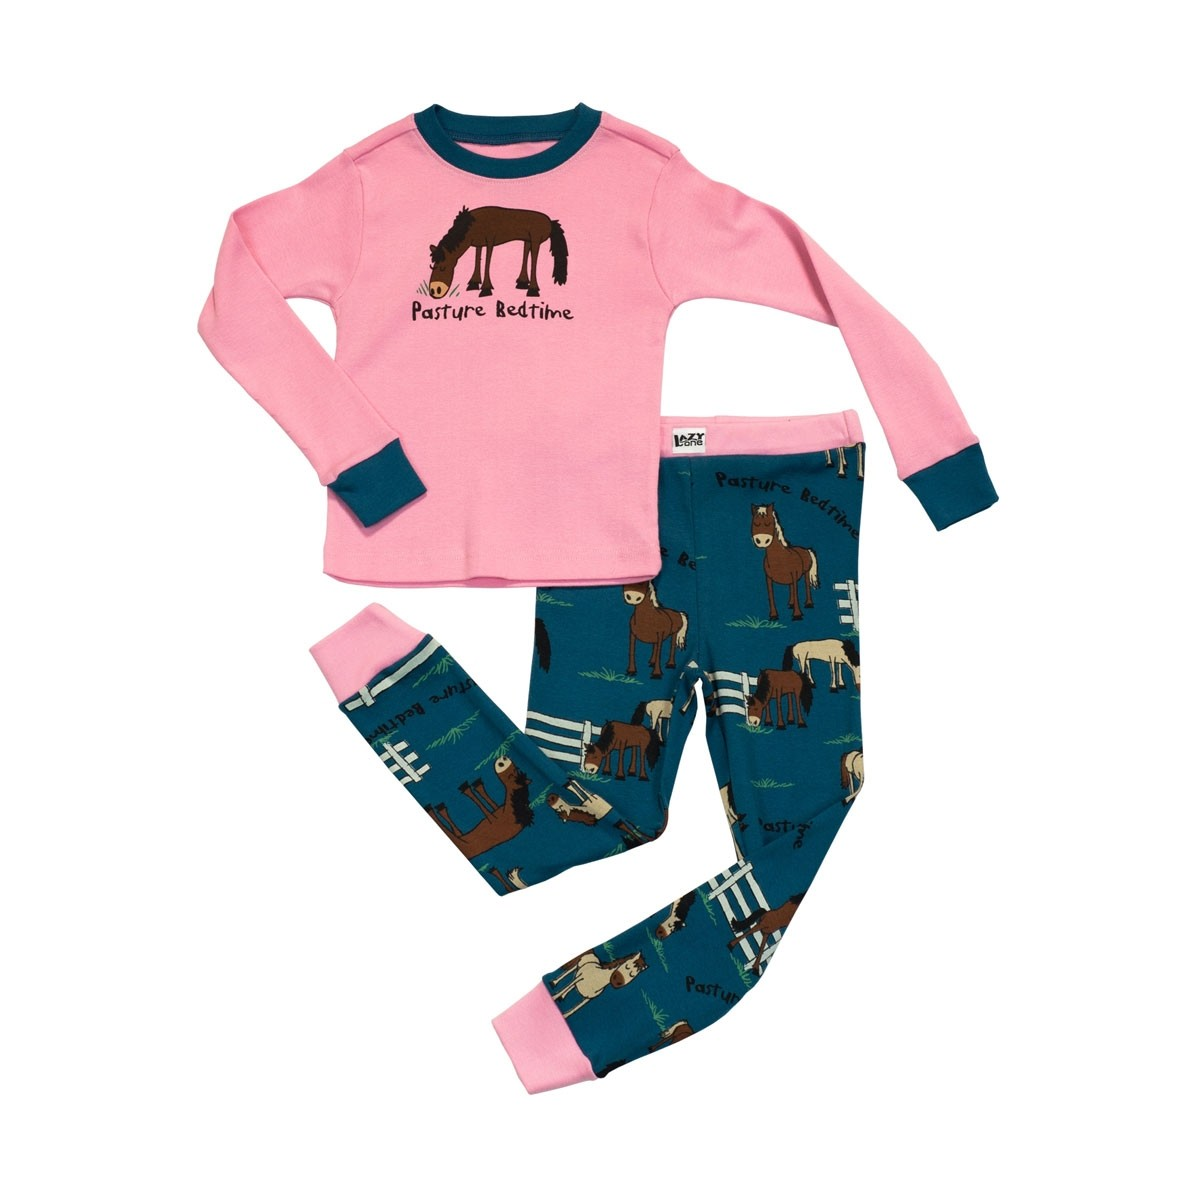 LazyOne Girls Pasture PJ Sets  - Thomas Irving's equestrian and accessories store  LazyOne Girls Pasture Bedtime PJ Sets